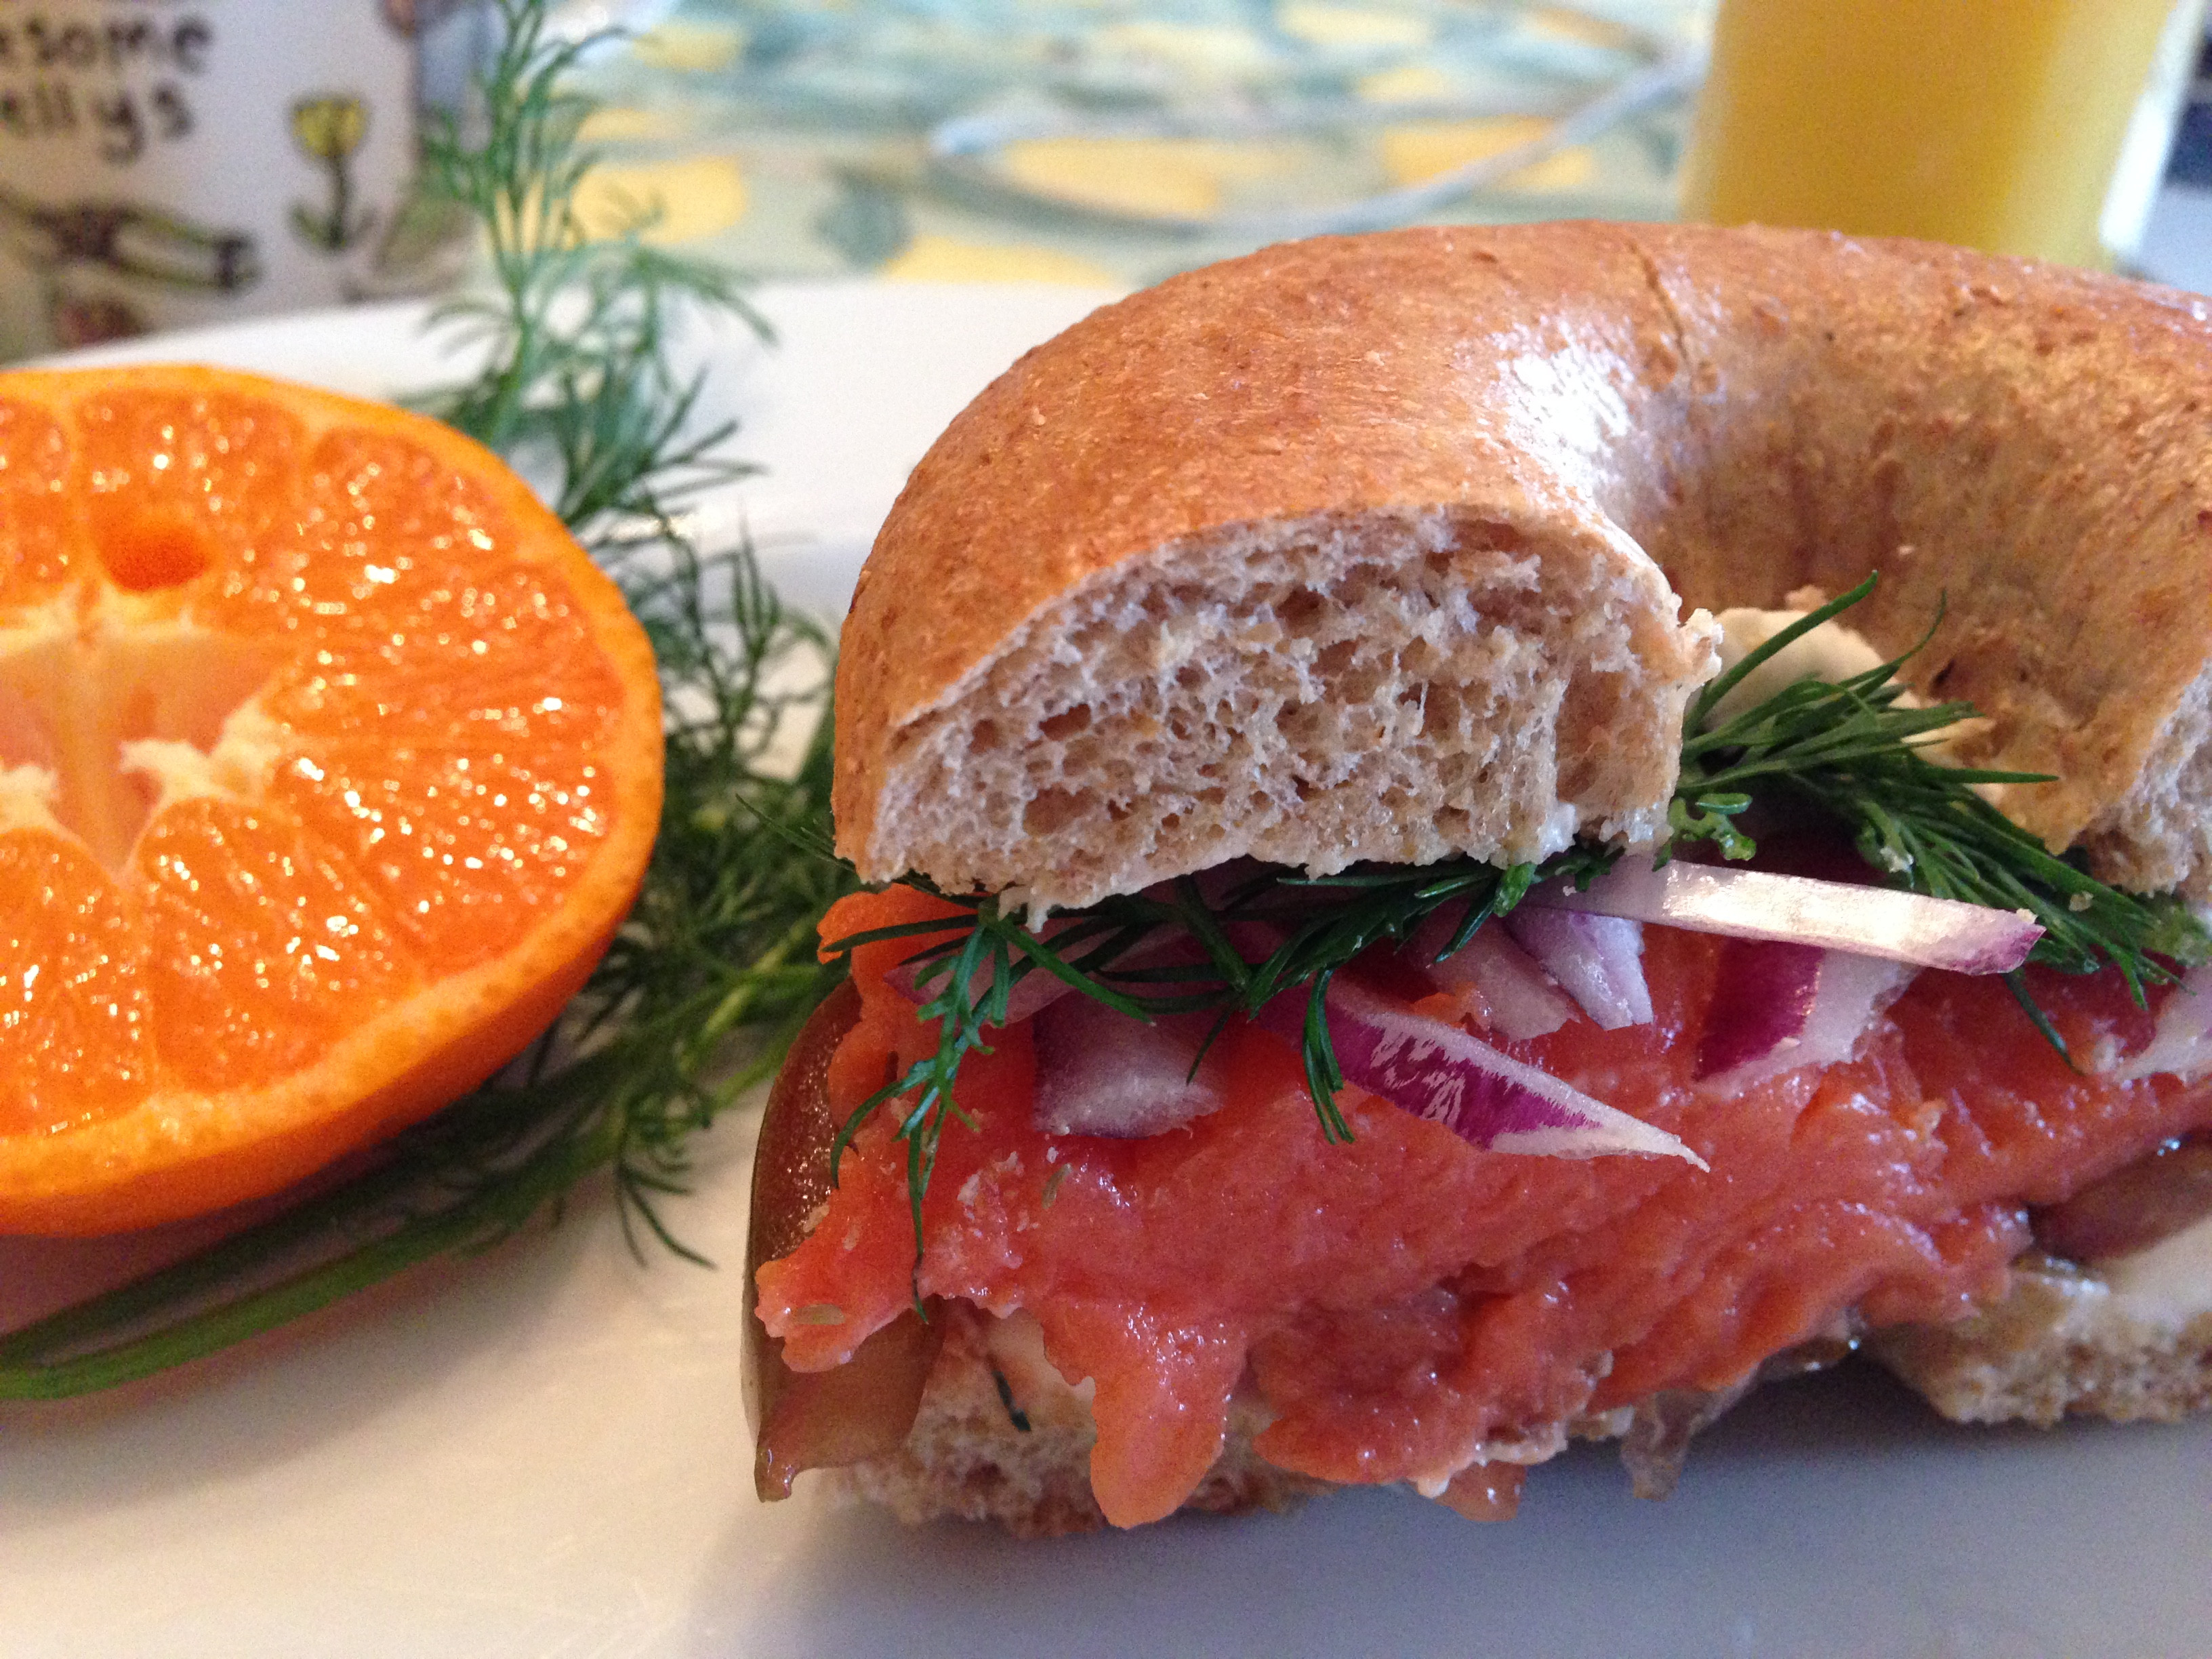 Smoked Salmon Bagel  Smoked Salmon Bagel Sandwich A Food Lover s Delight